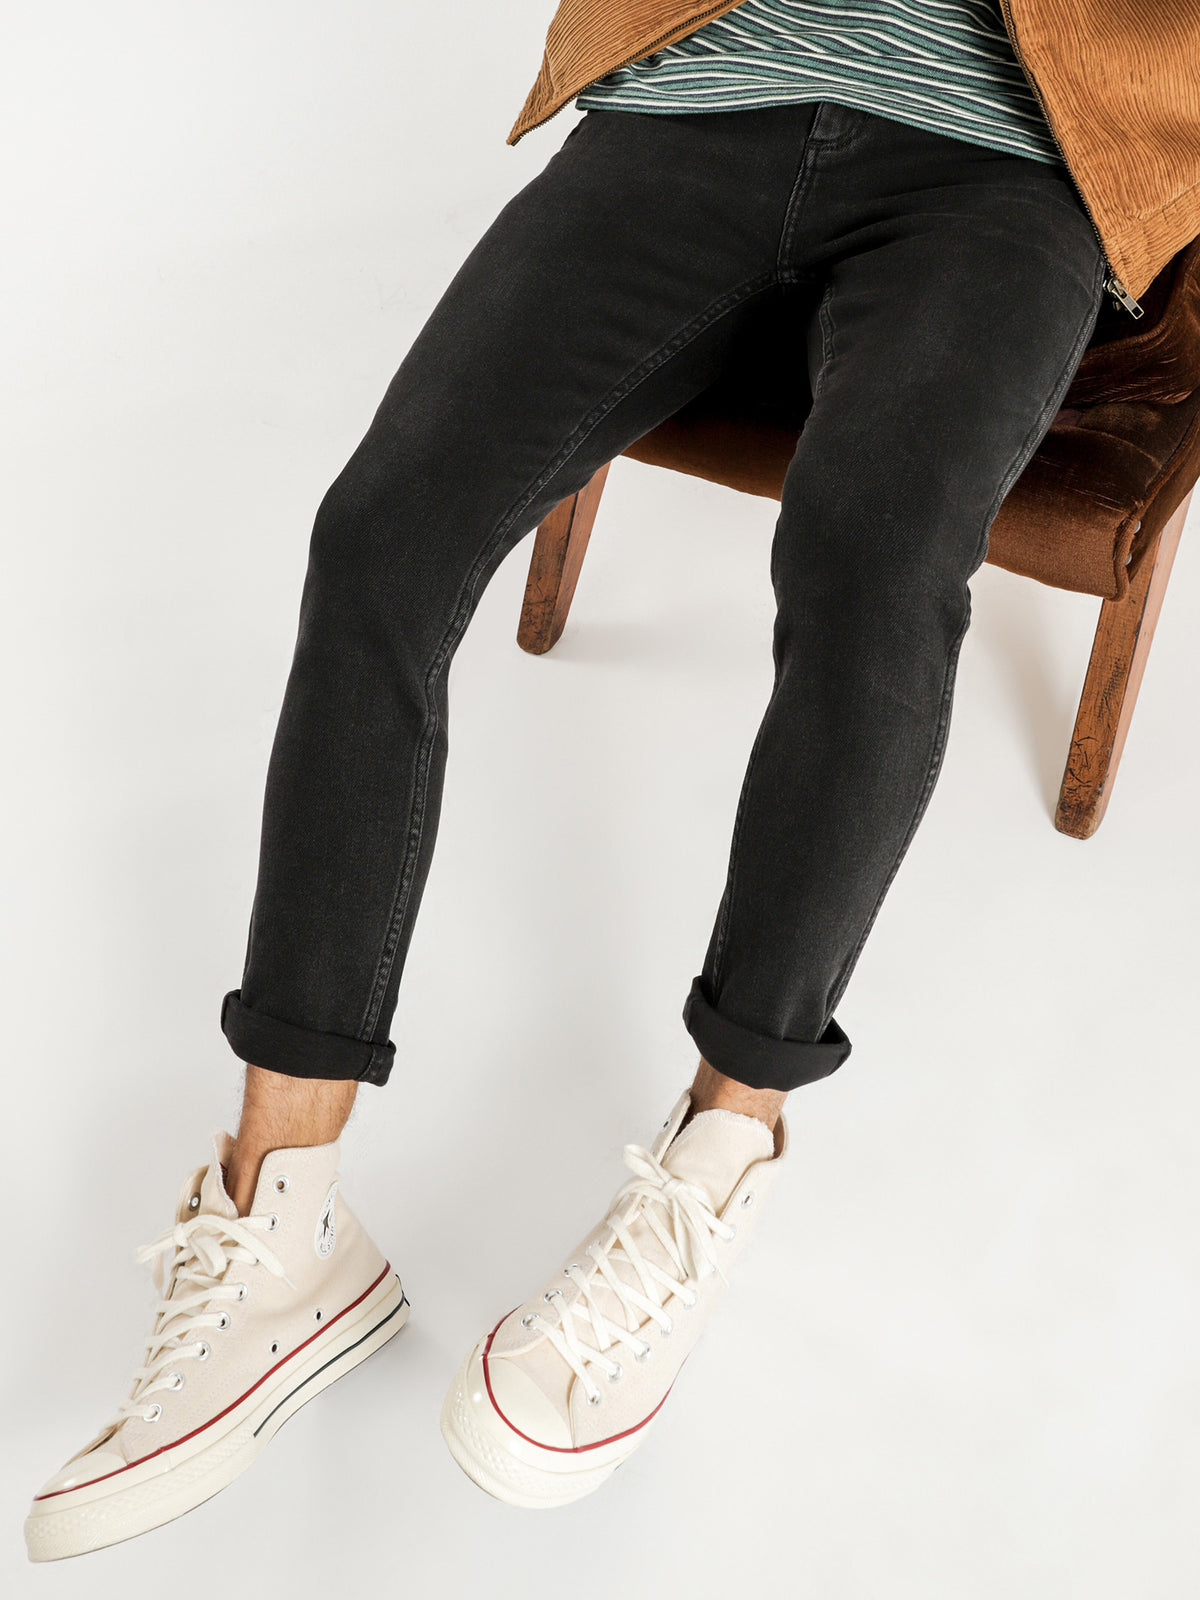 Smith R28 Jeans in Southwind Black